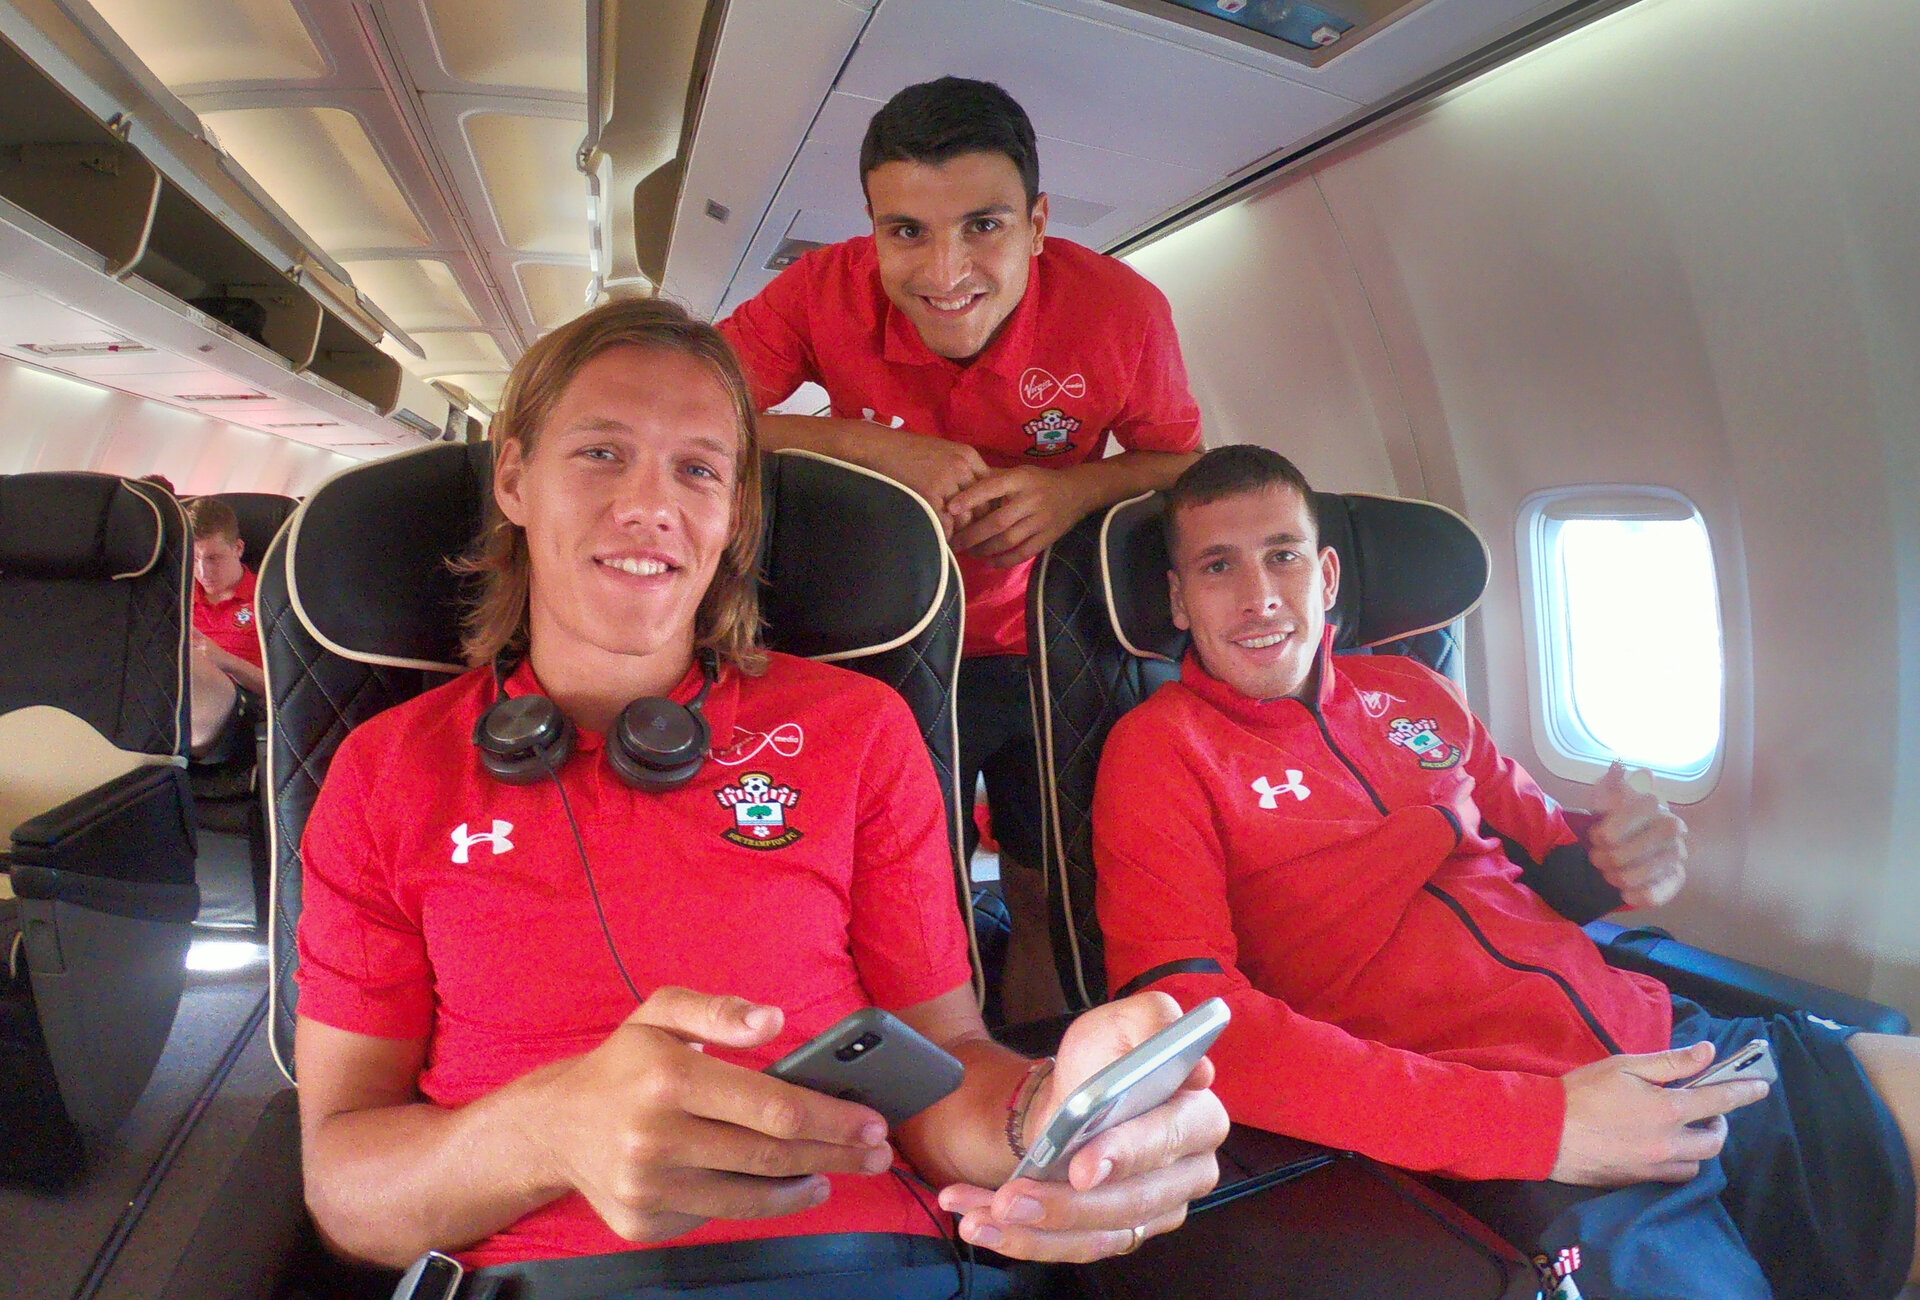 EVIAN-LES-BAINS, FRANCE - JULY 23: Players board the plane as Southampton FC take part in their first day of their pre-season training camp, Jannik Vestergaard(L), Mohamed Elyounoussi(centre) and Pierre-Emile Hojbjerg(R) on July 23, 2018 in Evian-les-Bains, France. (Photo by Matt Watson/Southampton FC via Getty Images)